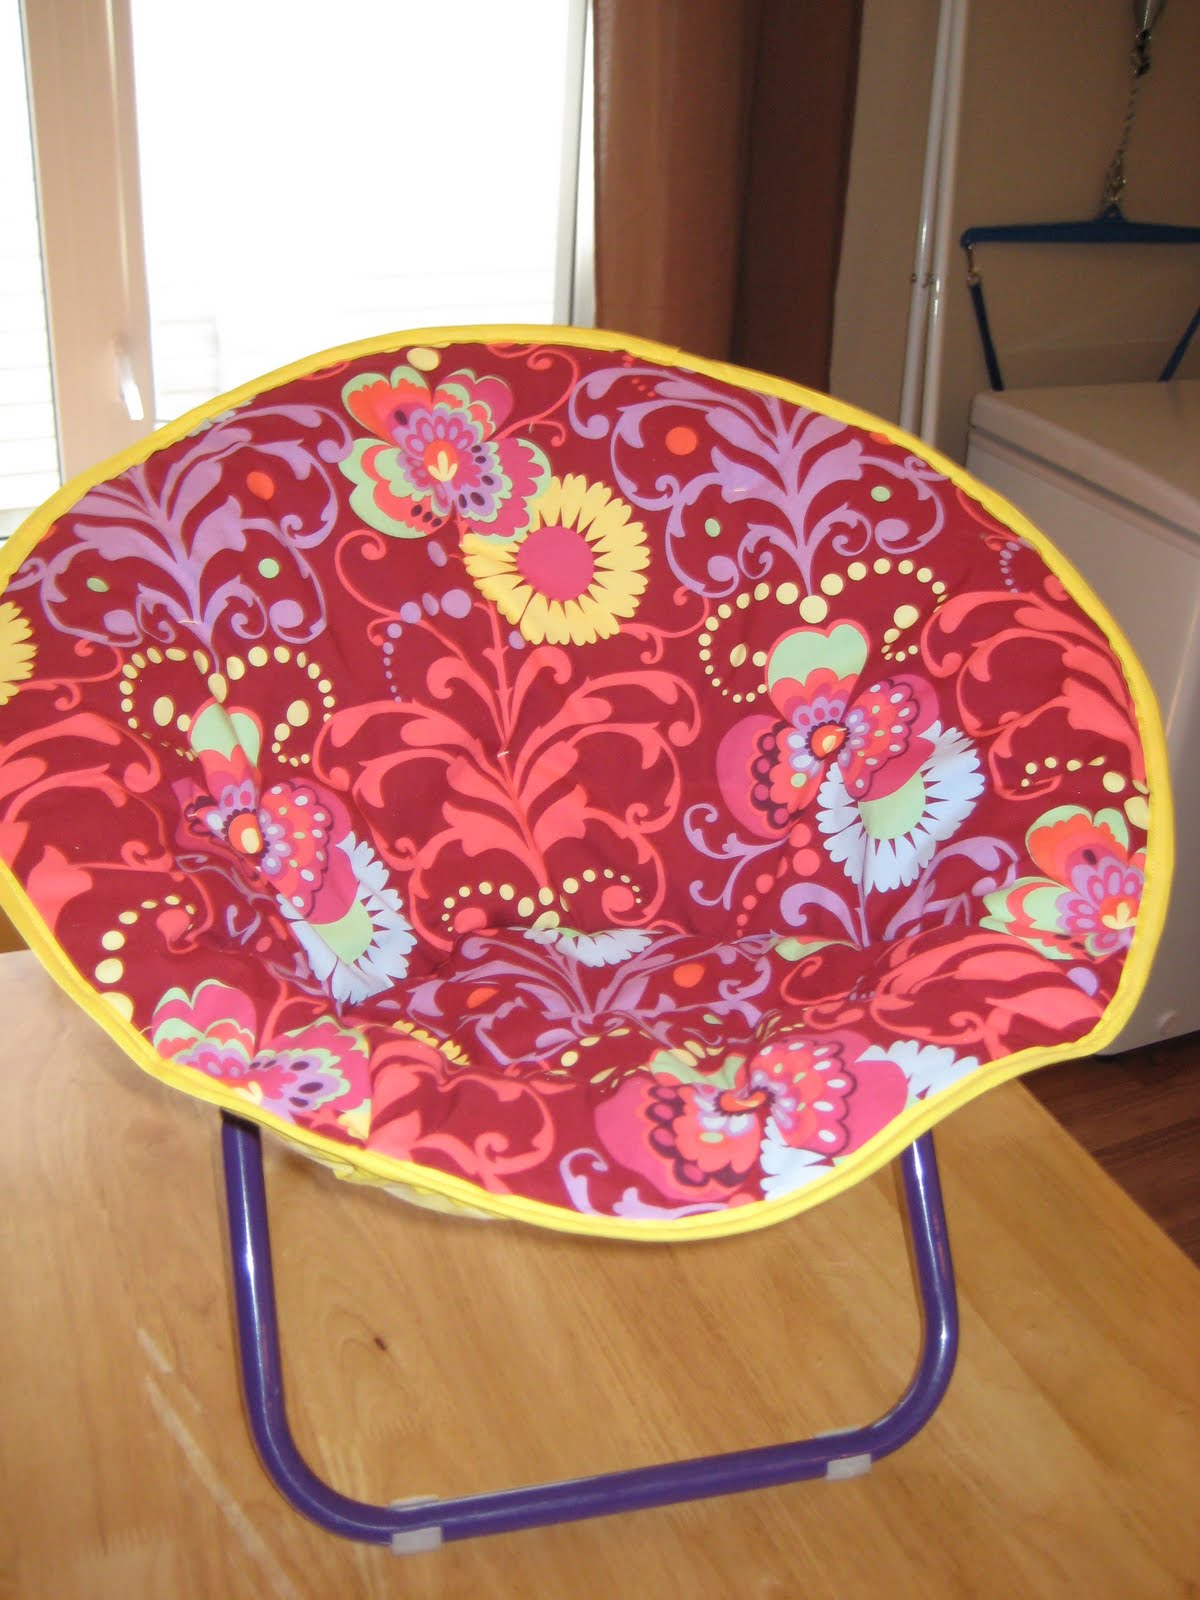 About A Month Ago I Sent Out A Request For One Of Those Saucer Chairs For  Kids To Recover For Catie, I Wanted A Really Cheap Second Hand One And  Julie Came ...